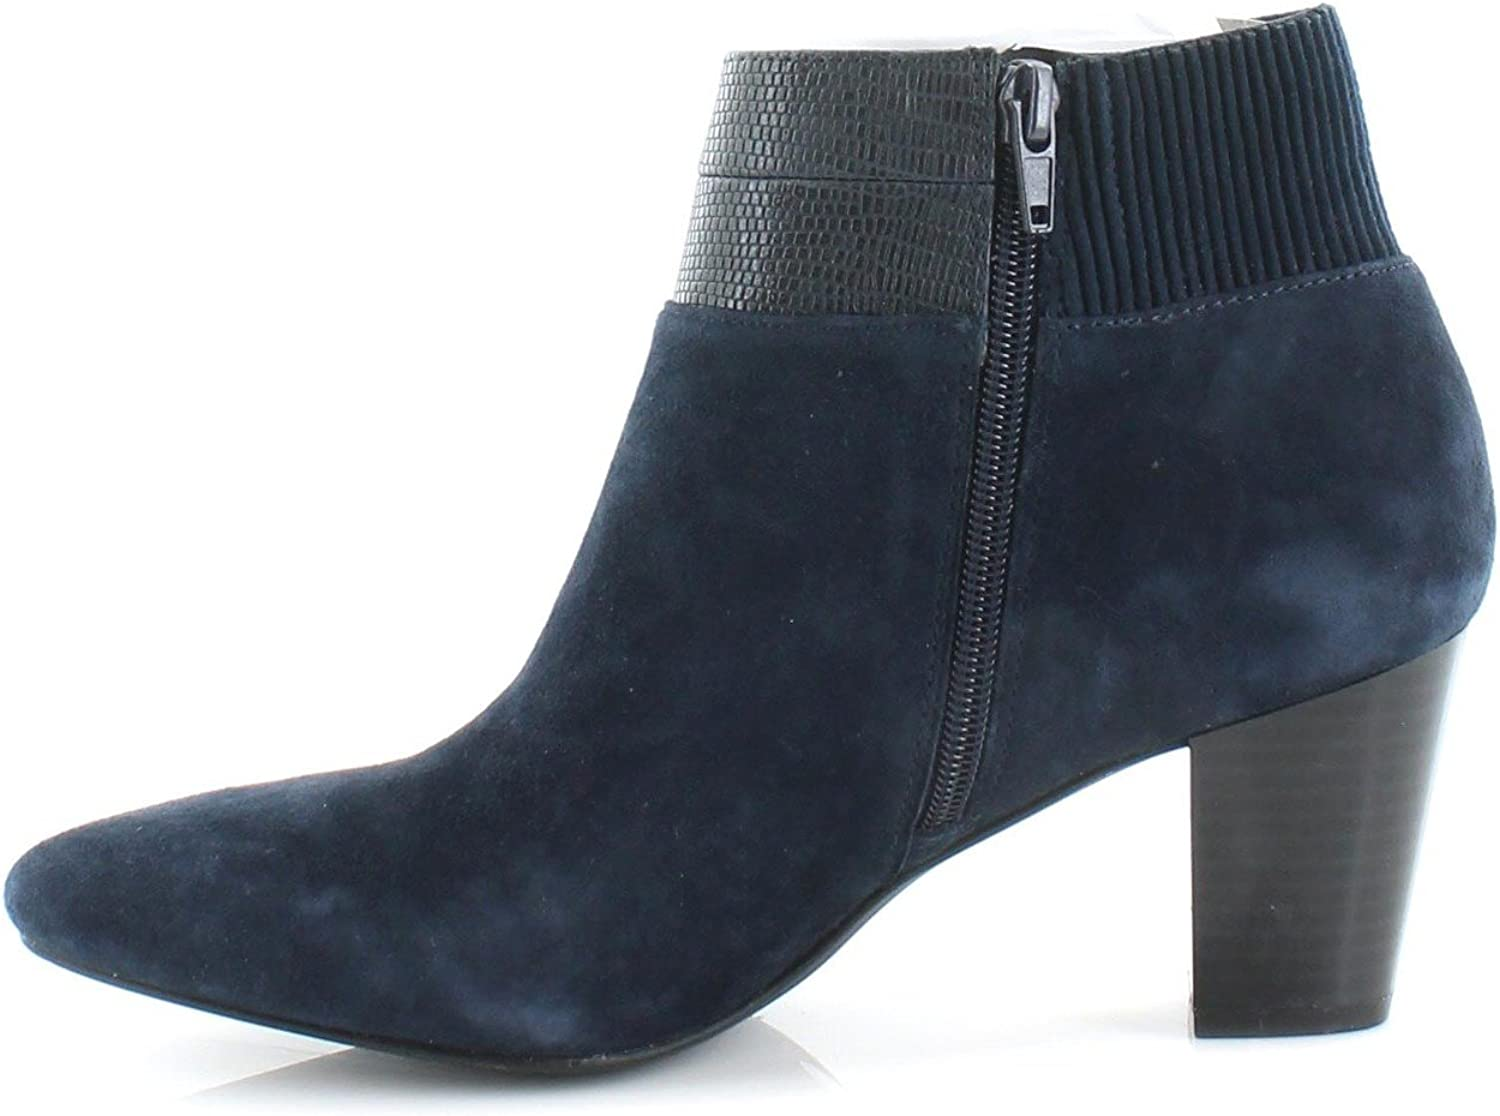 Alfani Womens Palessa Suede Almond Toe Ankle Fashion Boots, Ink, Size 5.0